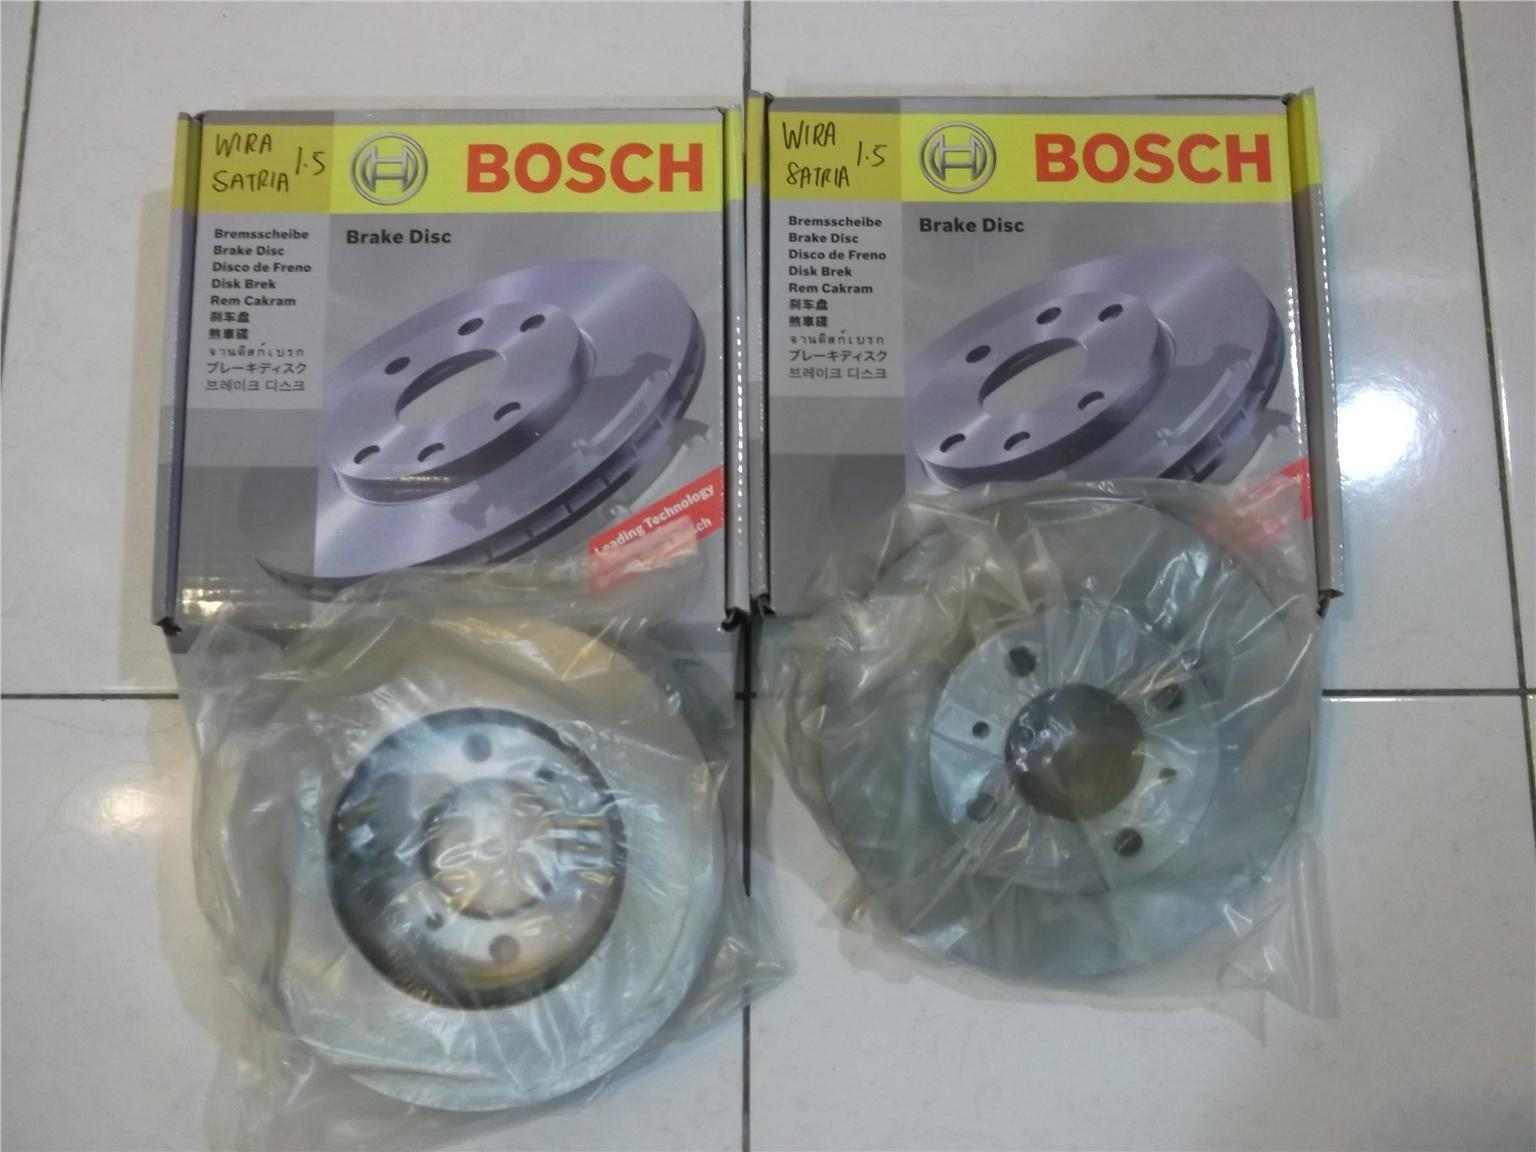 BOSCH FRONT Disc Rotor for WIRA/SATRIA 1.5 1 pair